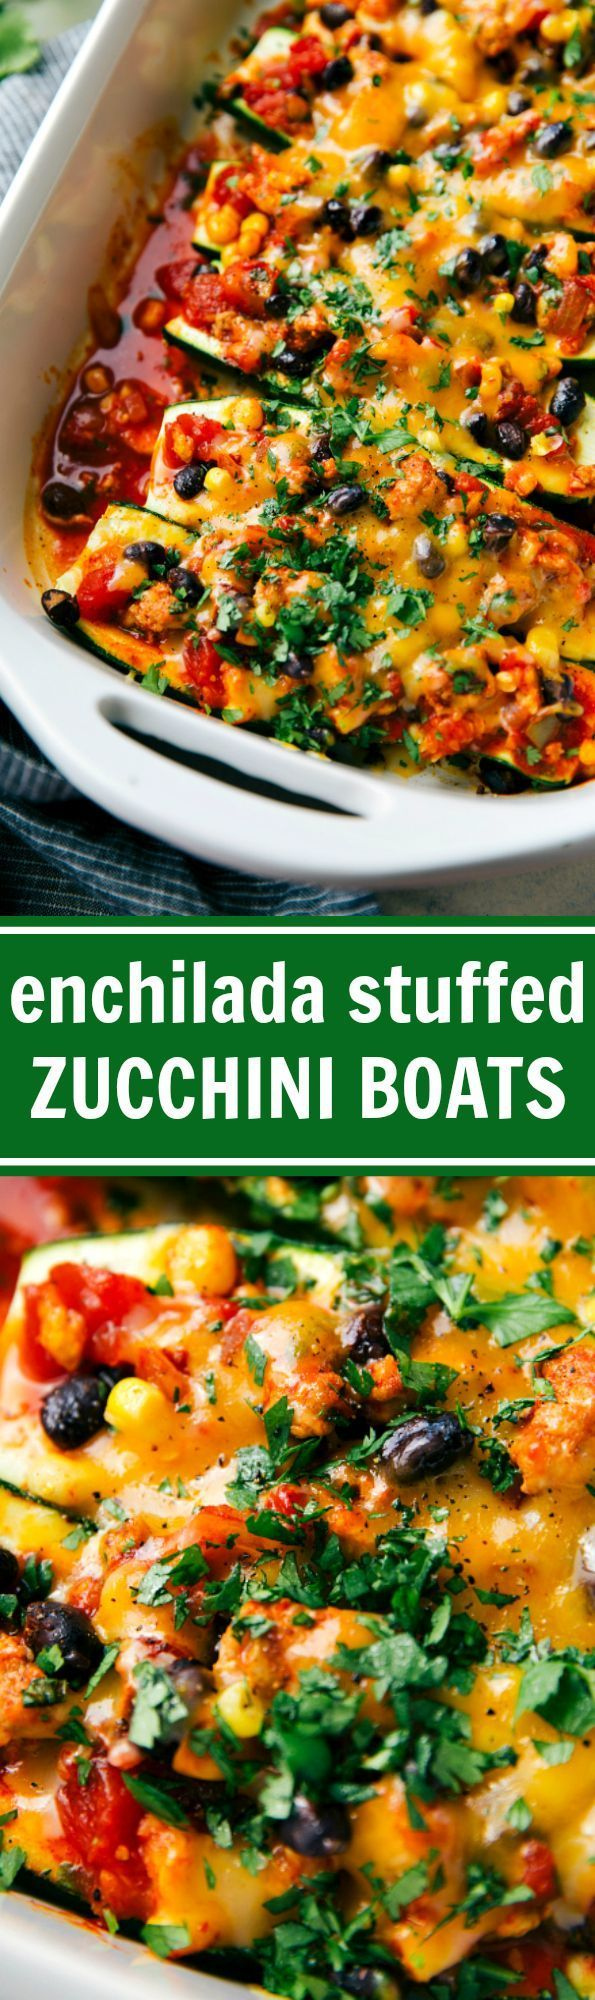 34 best real deals 100 days of real food images on pinterest real mexican ground turkey enchilada stuffed zucchini boats bursting with flavor and tons of good for you ingredients recipe from chelseasmessyapro fandeluxe Images